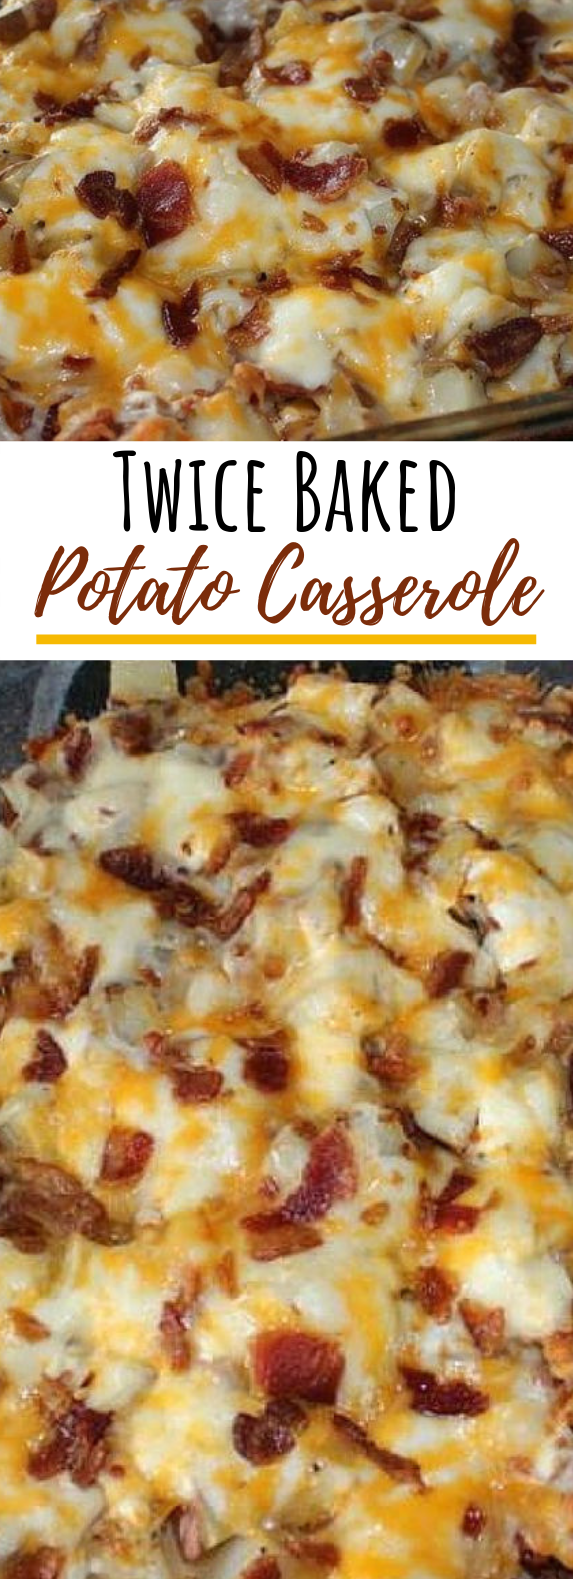 Twice Baked Potato Casserole #dinner #casserole